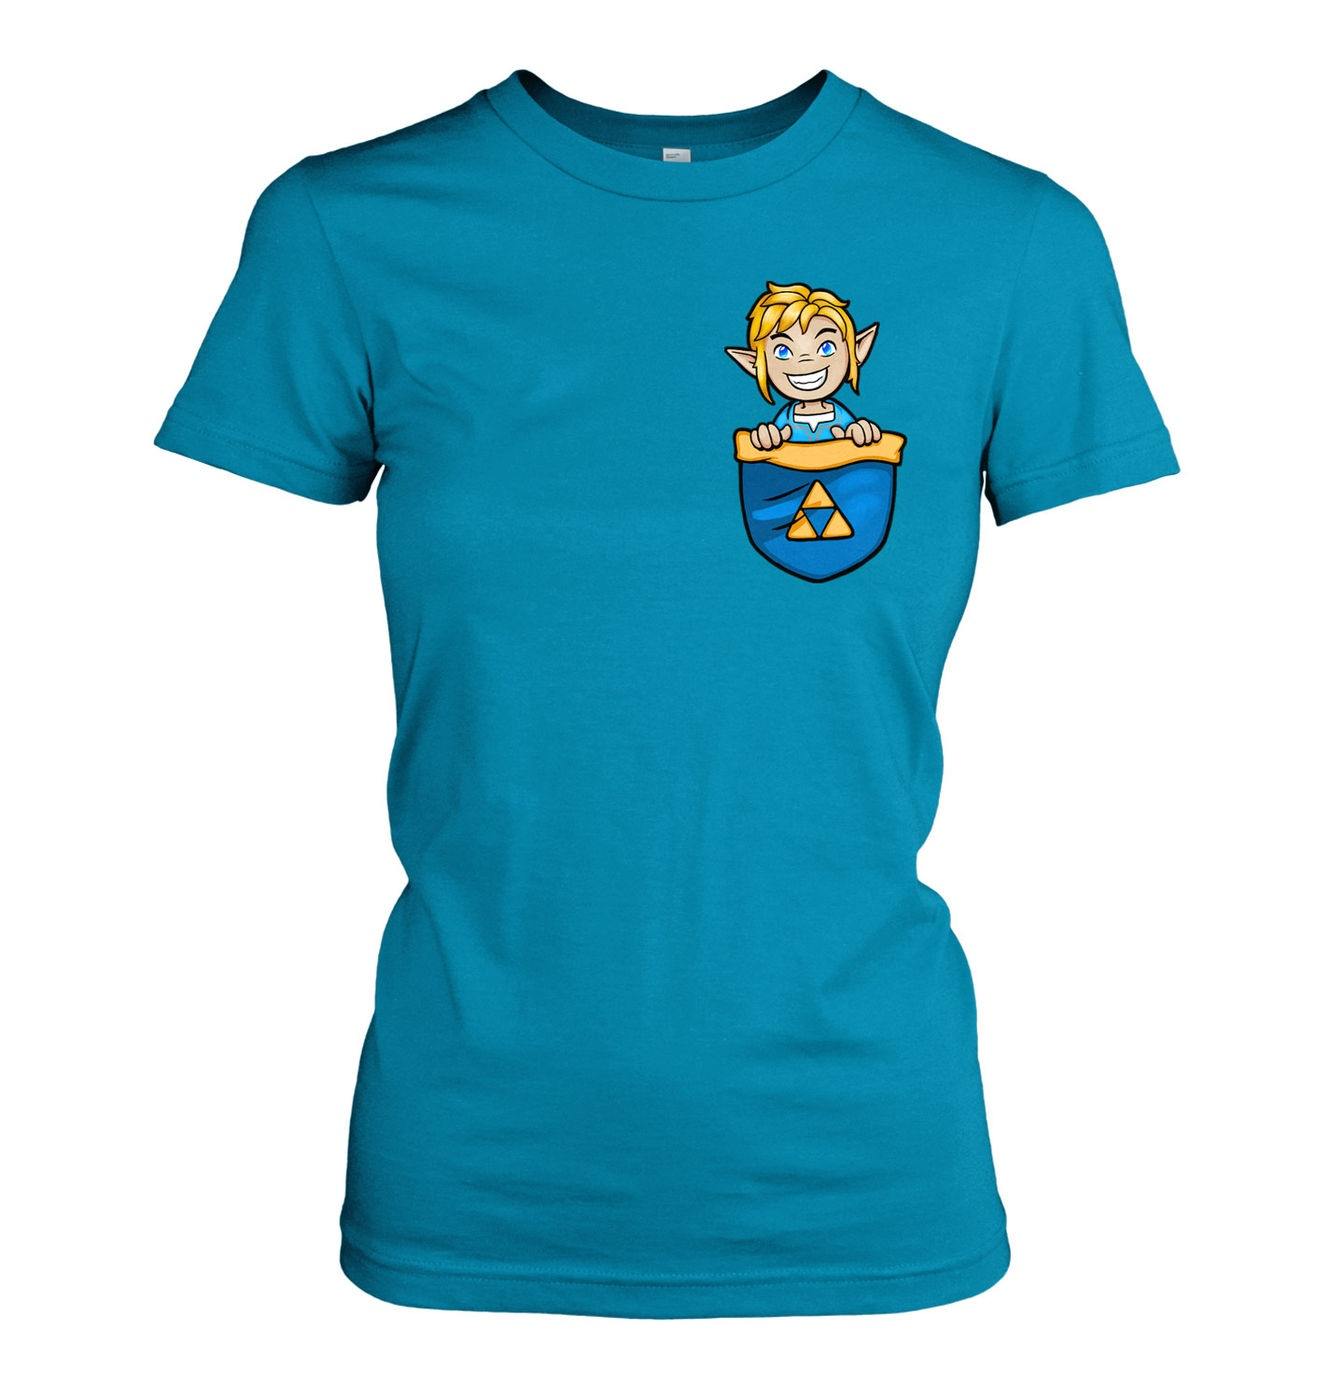 Pocket Hyrule Warrior (Blue) women's t-shirt by Something Geeky